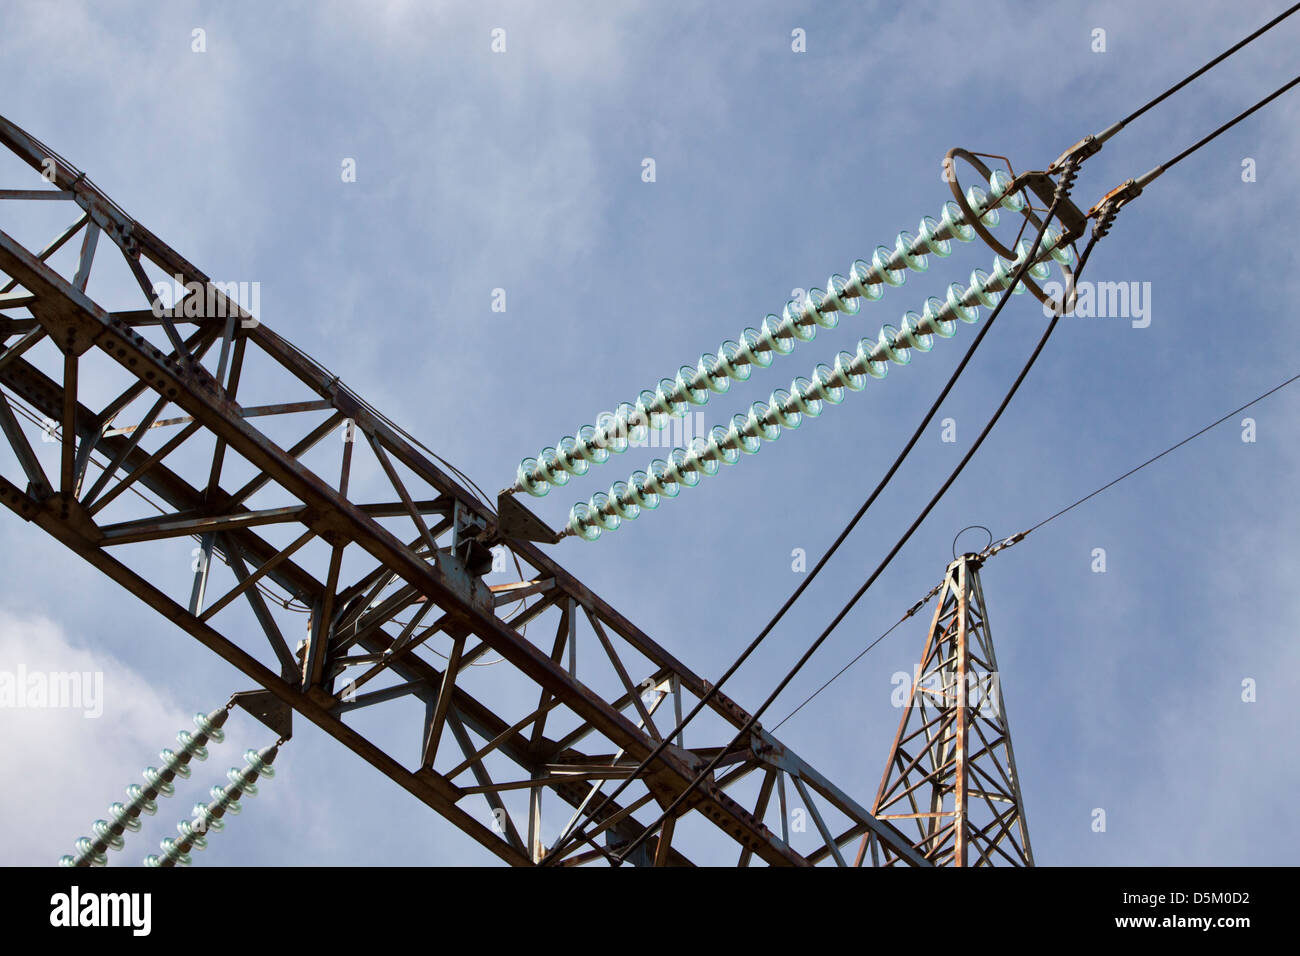 Steel lattice high voltage transmission tower - detail with cables and insulators - Stock Image